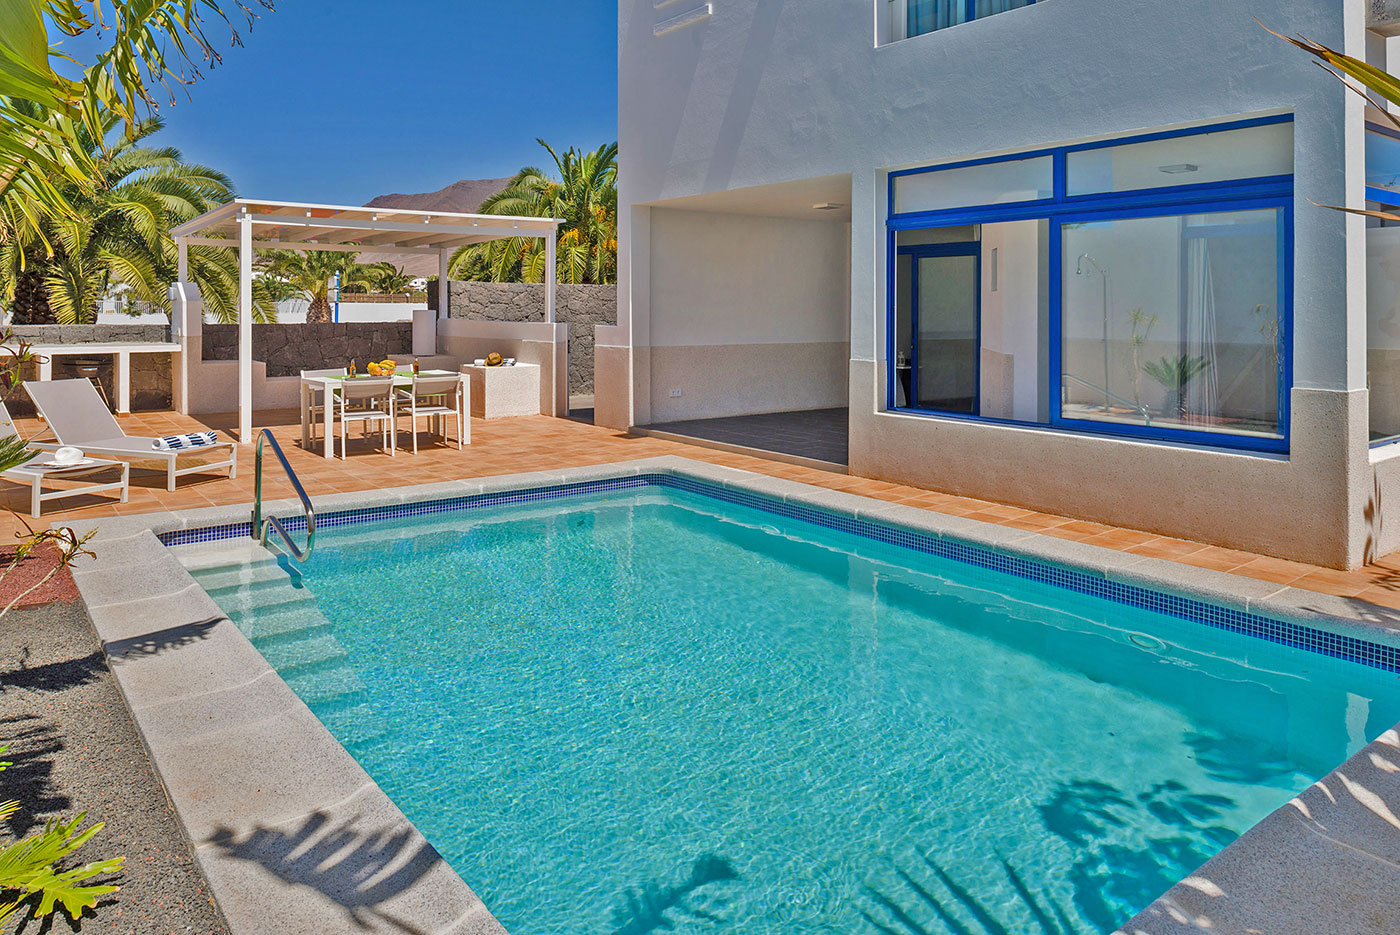 villa-yawl-lanzarote-private-pool